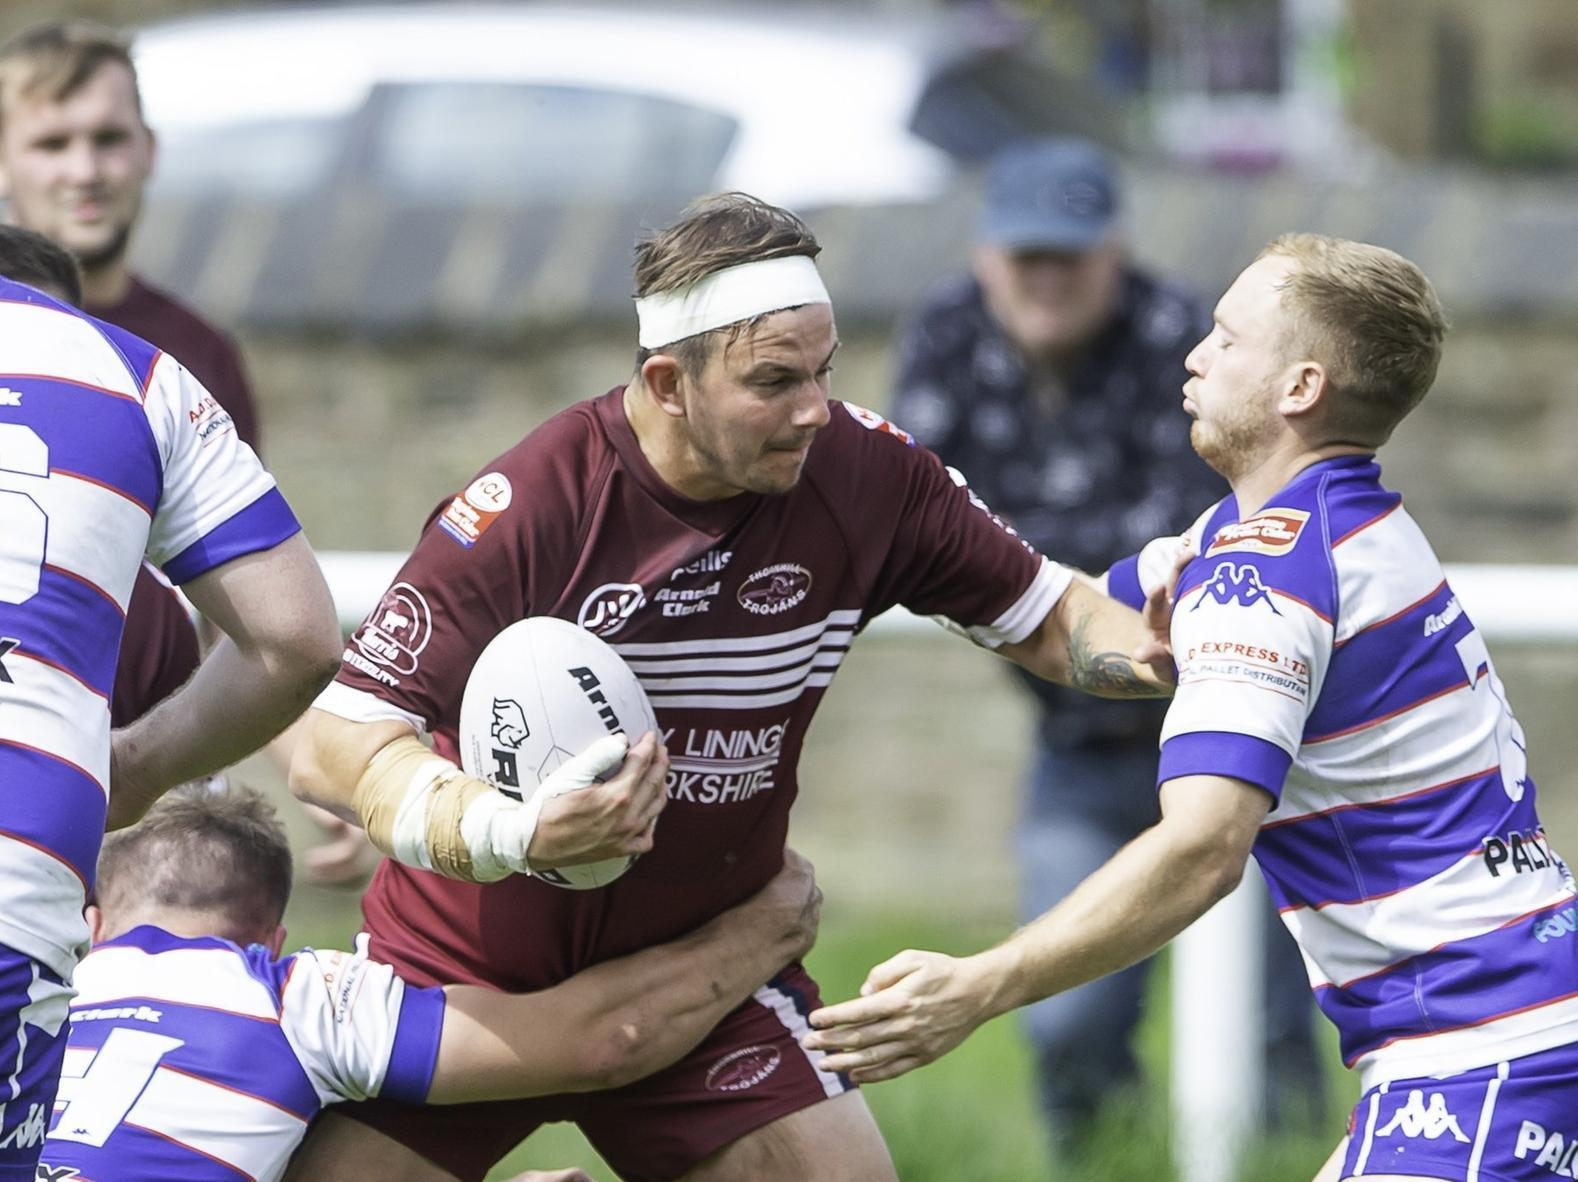 Ex-Hunslet player Danny Ratcliffe appointed coach of Thornhill Trojans - Yorkshire Evening Post